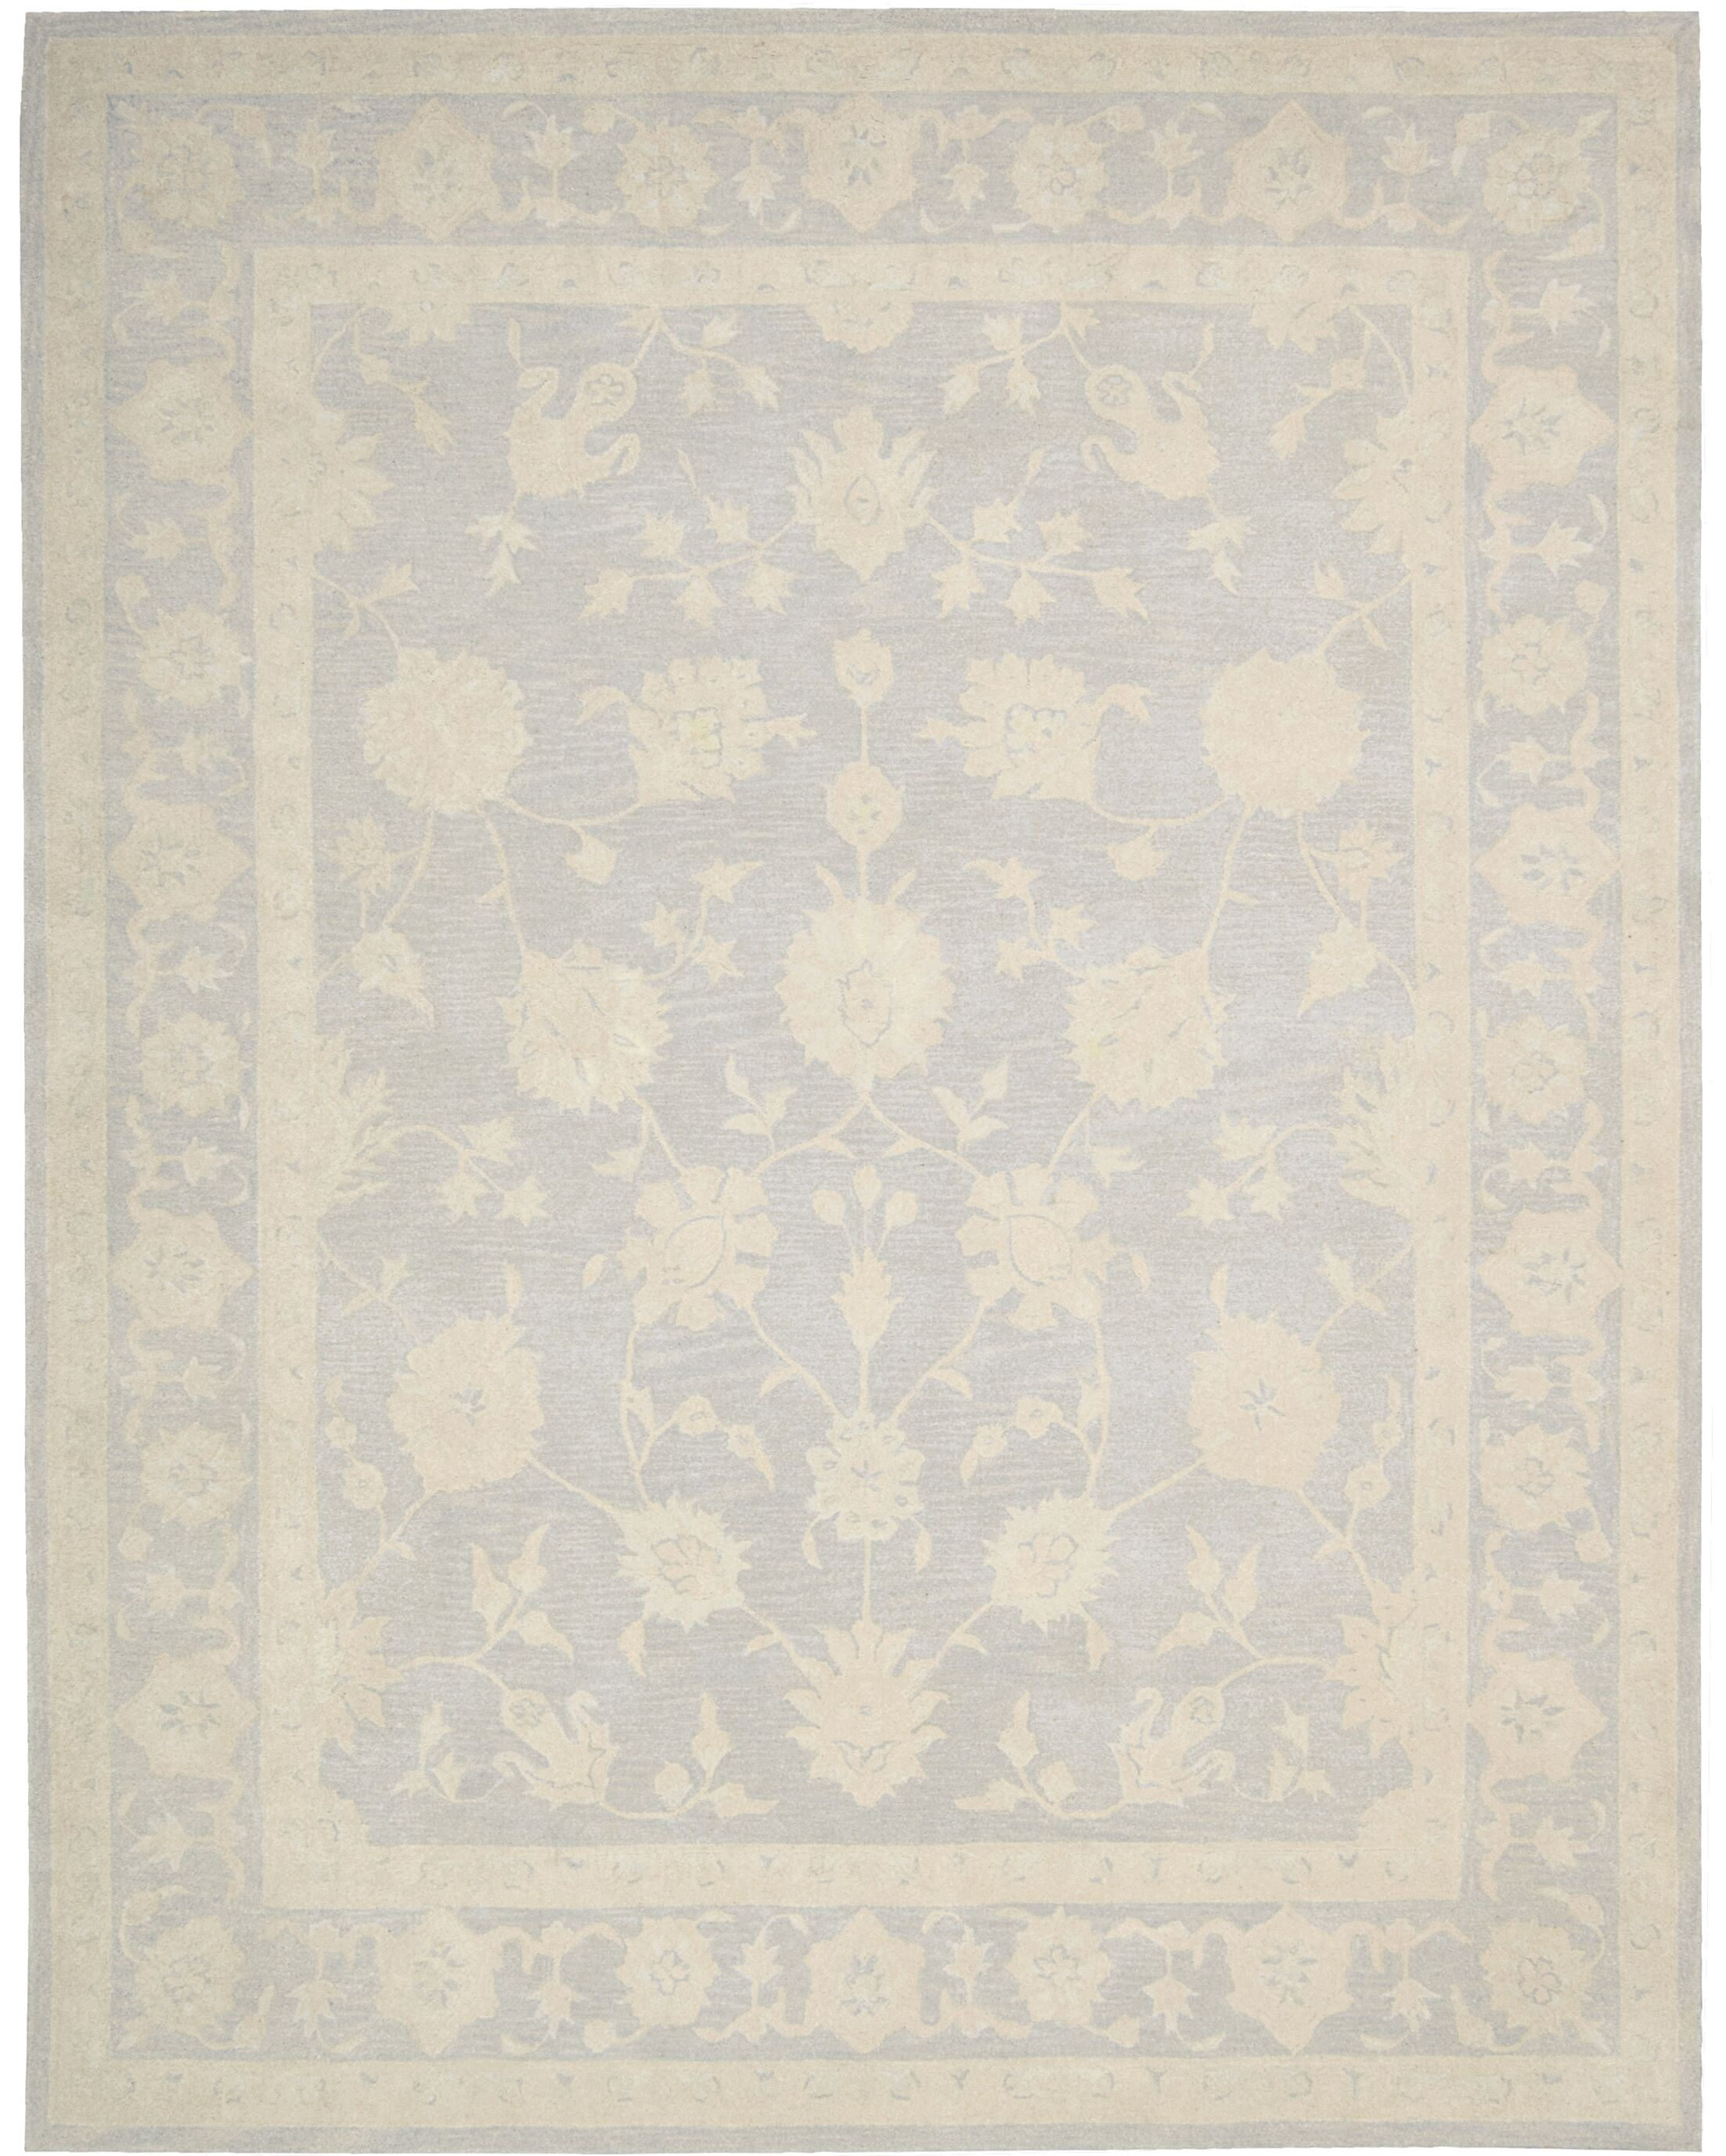 Ridgeville Hand-Tufted Light Blue Area Rug Rug Size: Rectangle 3'9